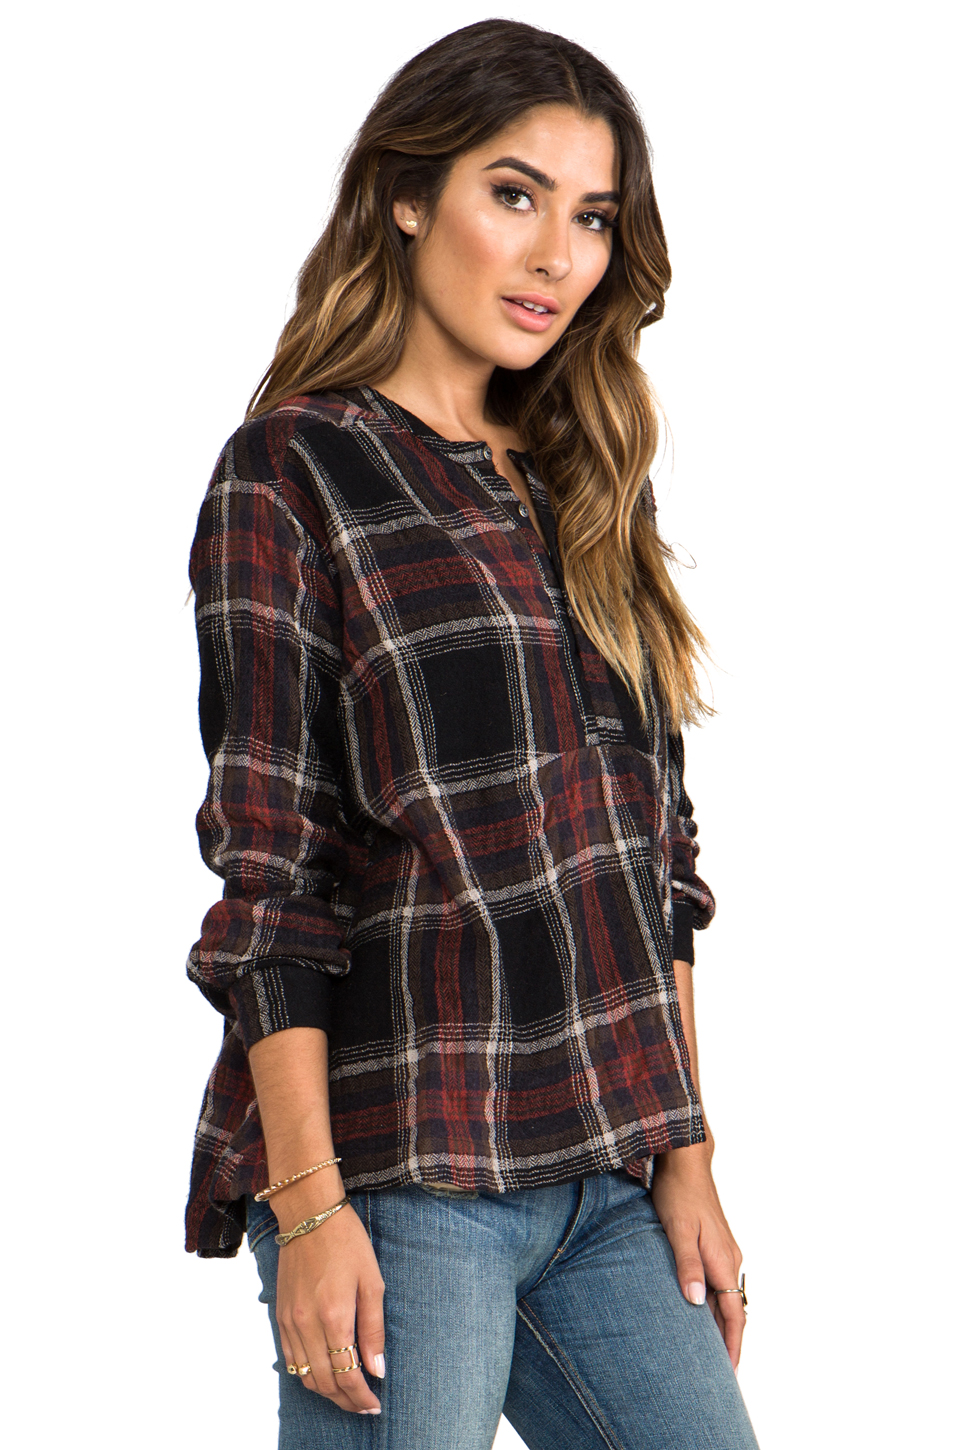 Free People Johnny Plaid Top in Black Combo